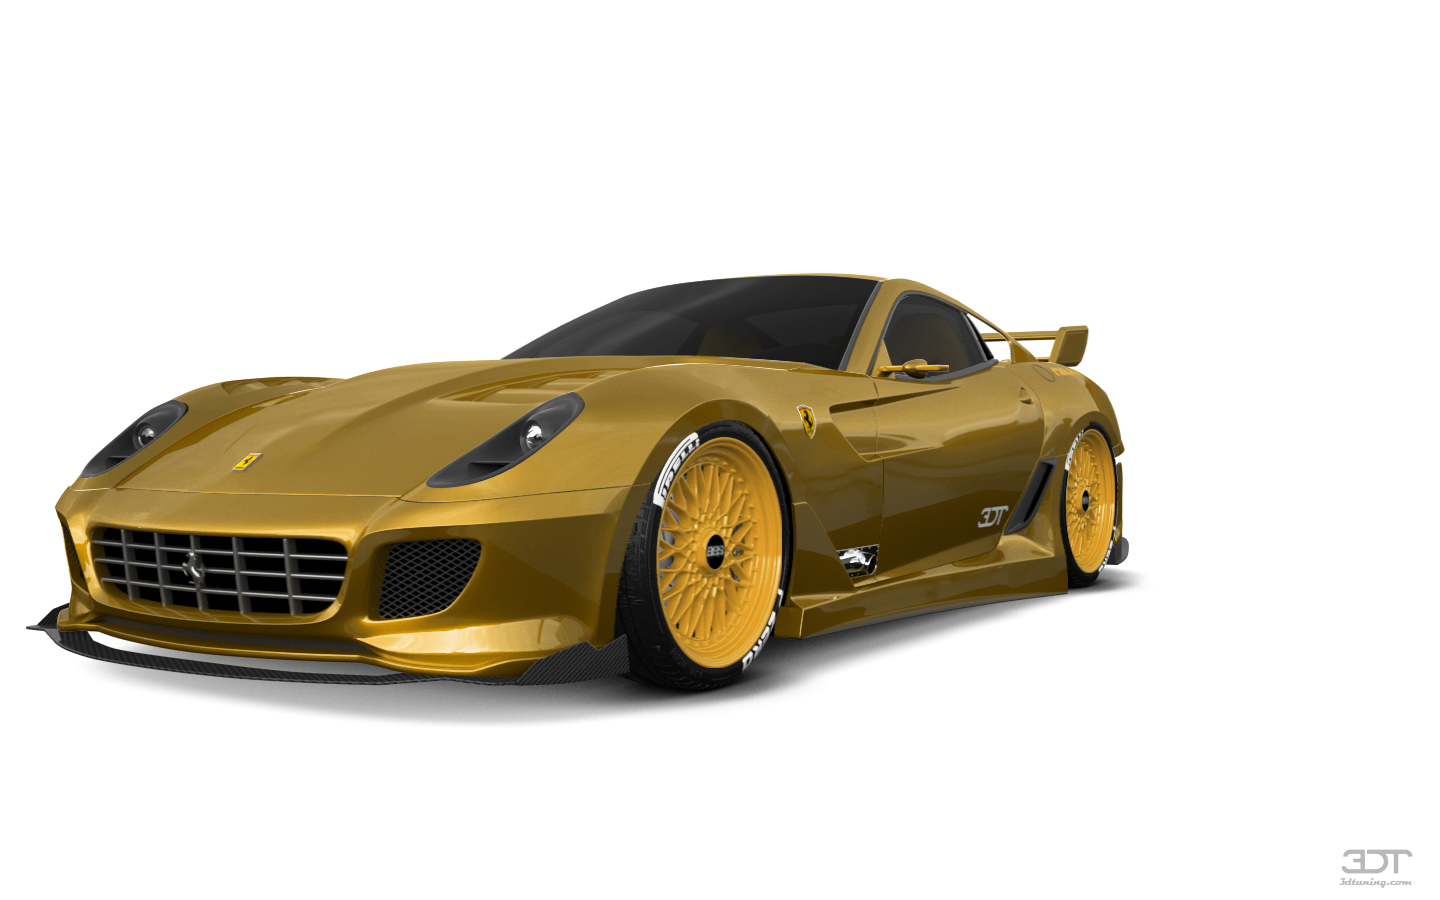 Ferrari 599 2 Door Coupe 2012 tuning